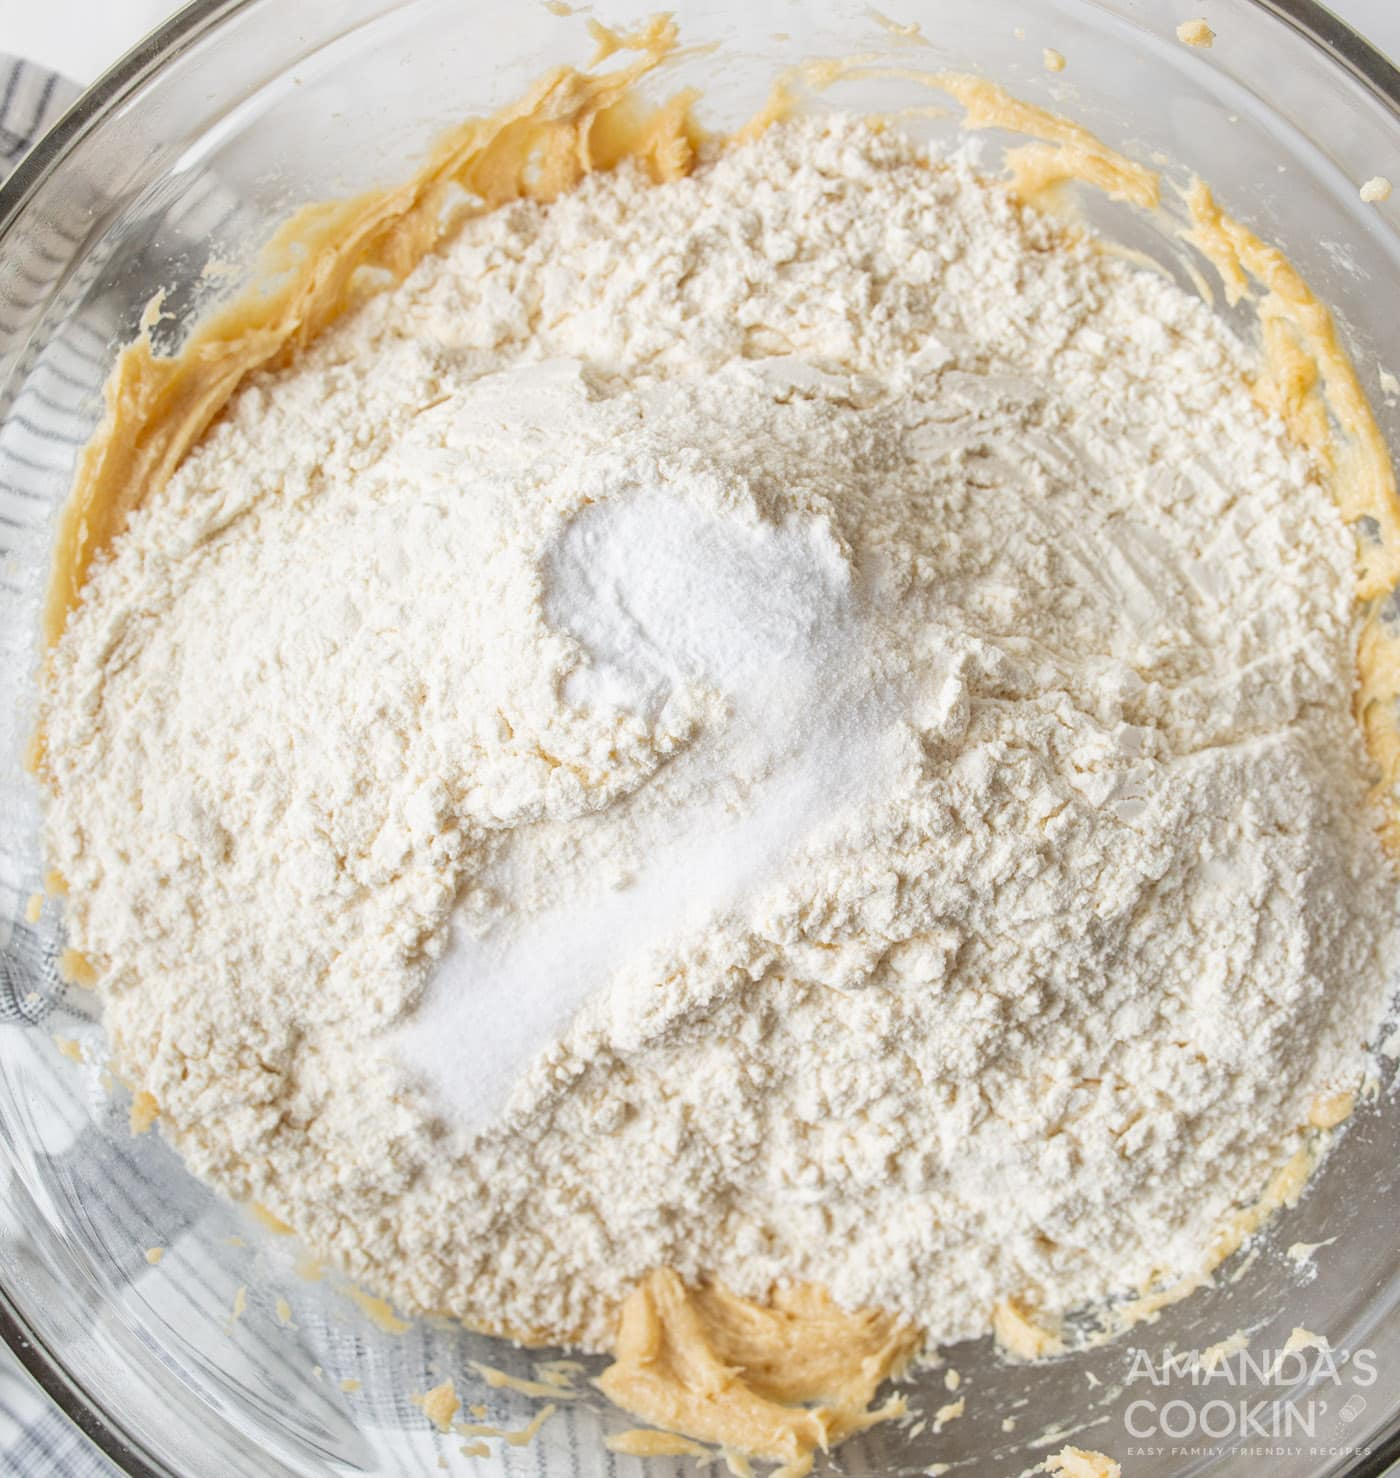 flour and baking powder on top of cookie dough